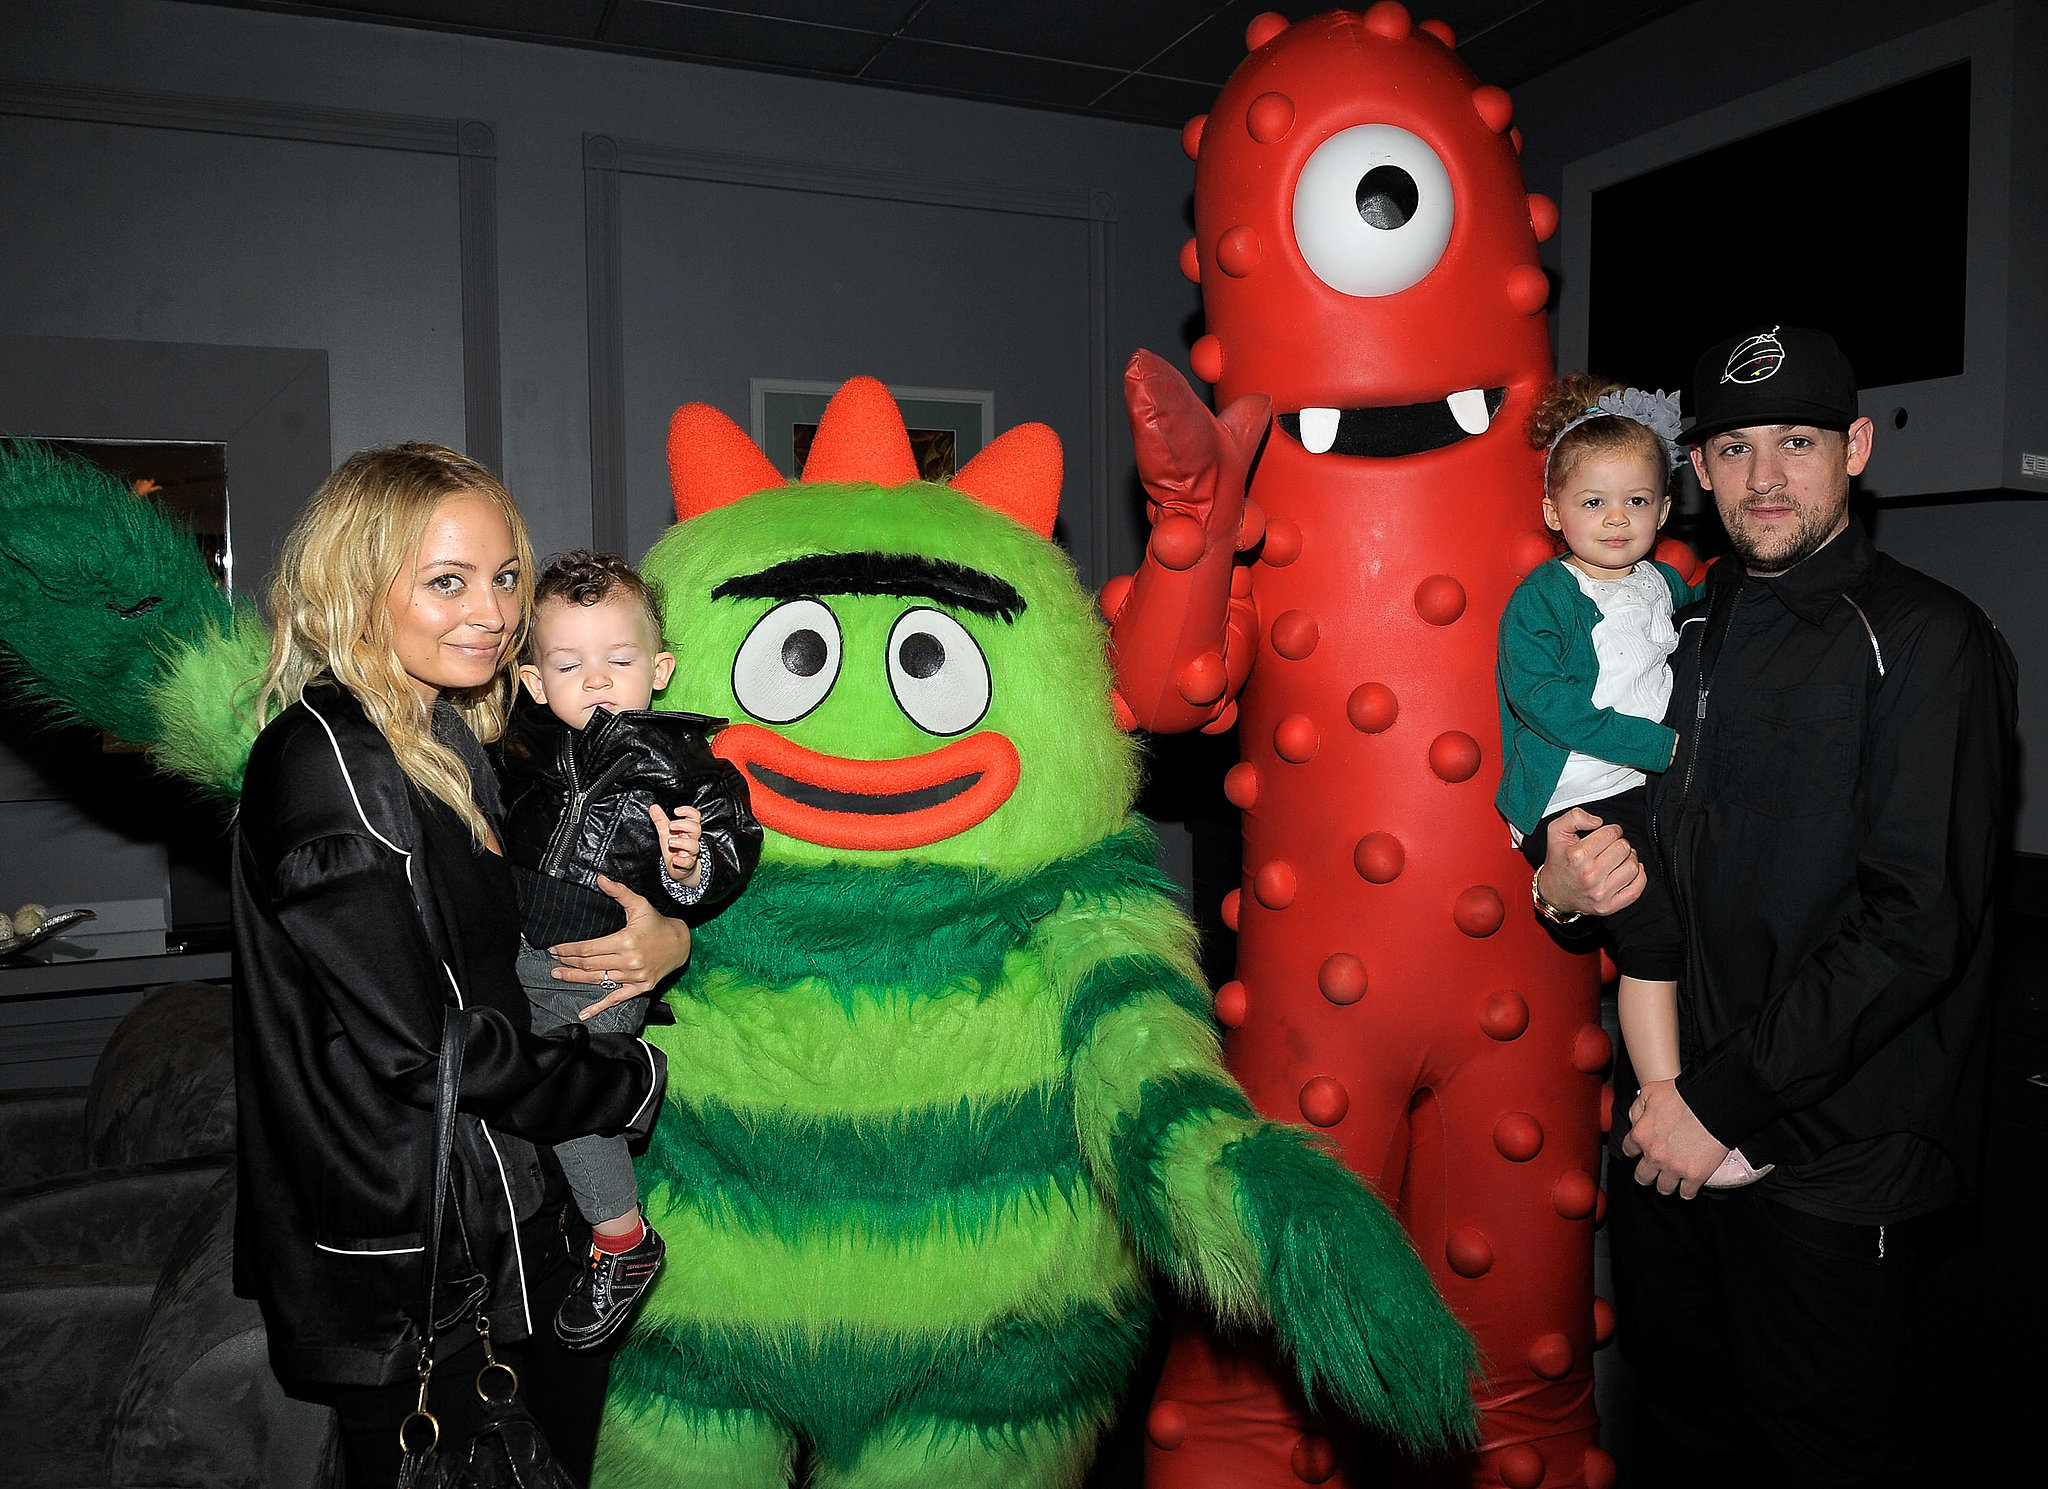 Nicole Richie and Joel Madden brought their kids, Harlow and Sparrow, to a Yo Gabba Gabba! concert in LA in November 2010.